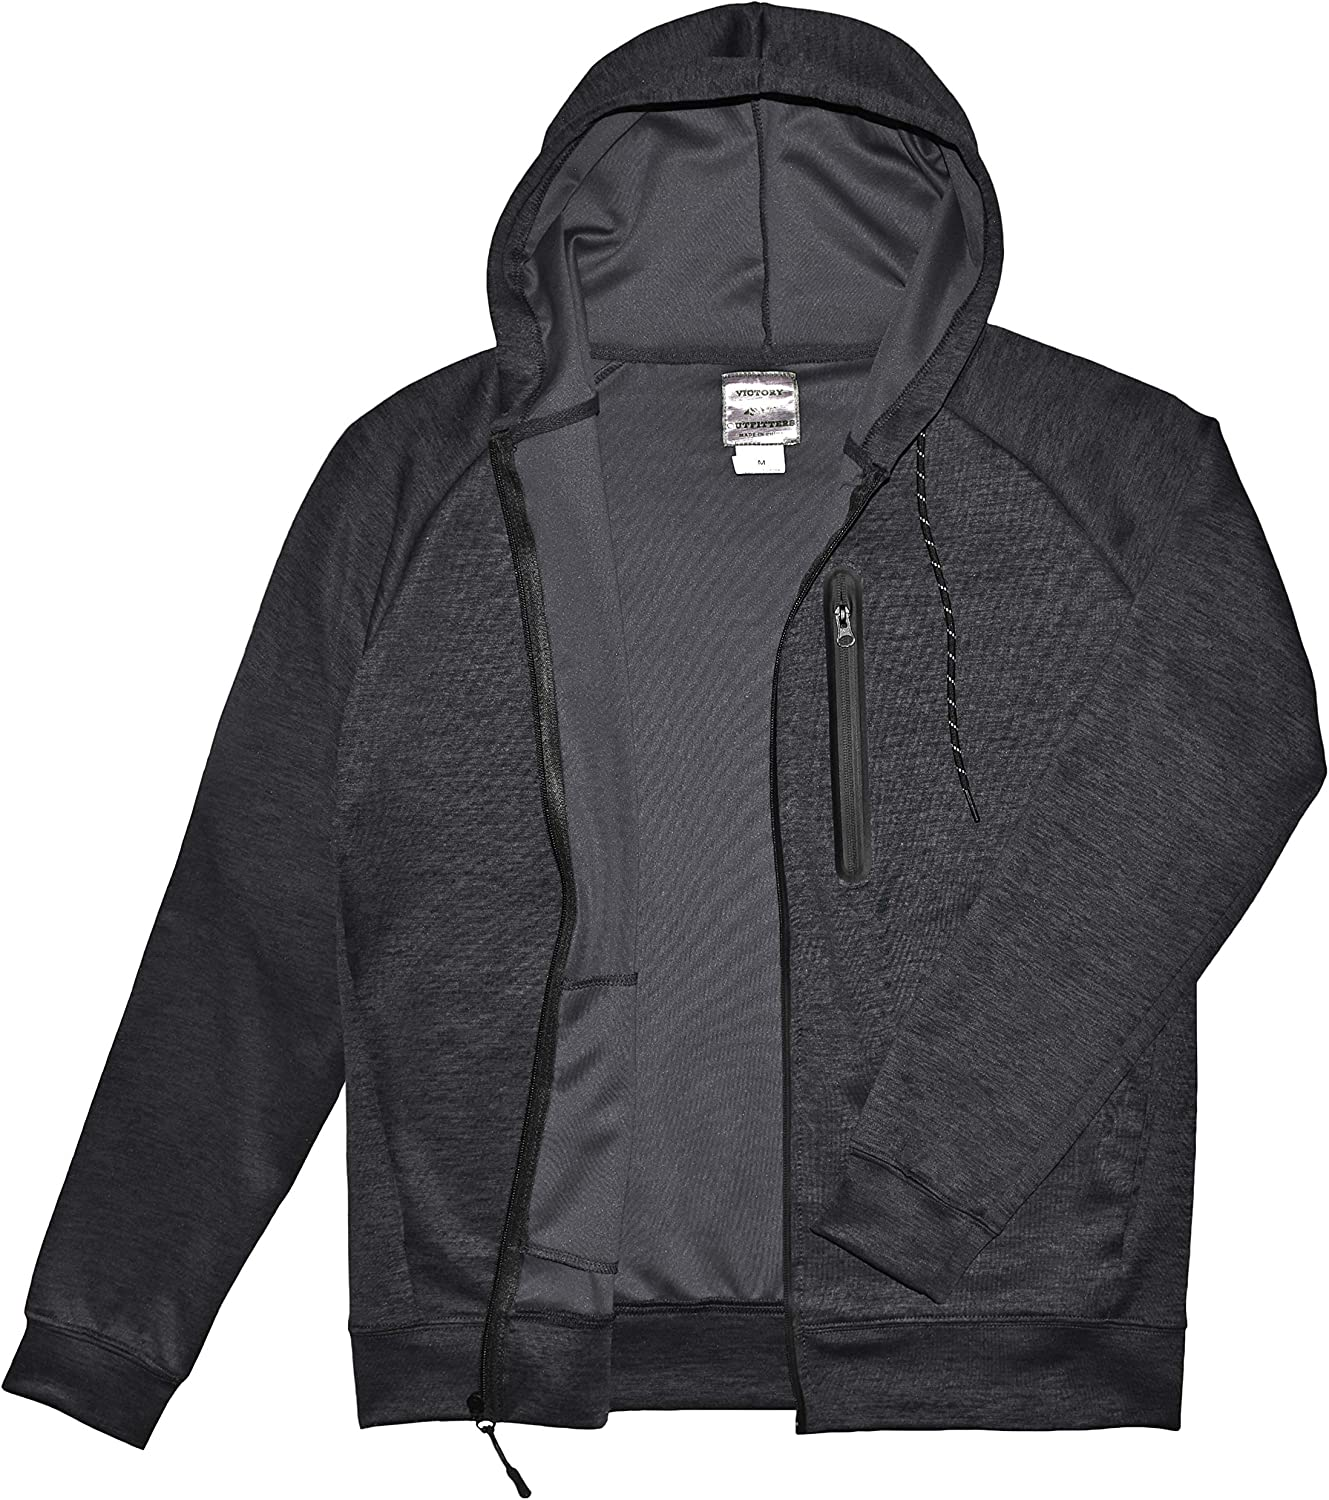 Victory Outfitters Men's Active Space-Dye Zip-Up Hoodie with Tech Pockets